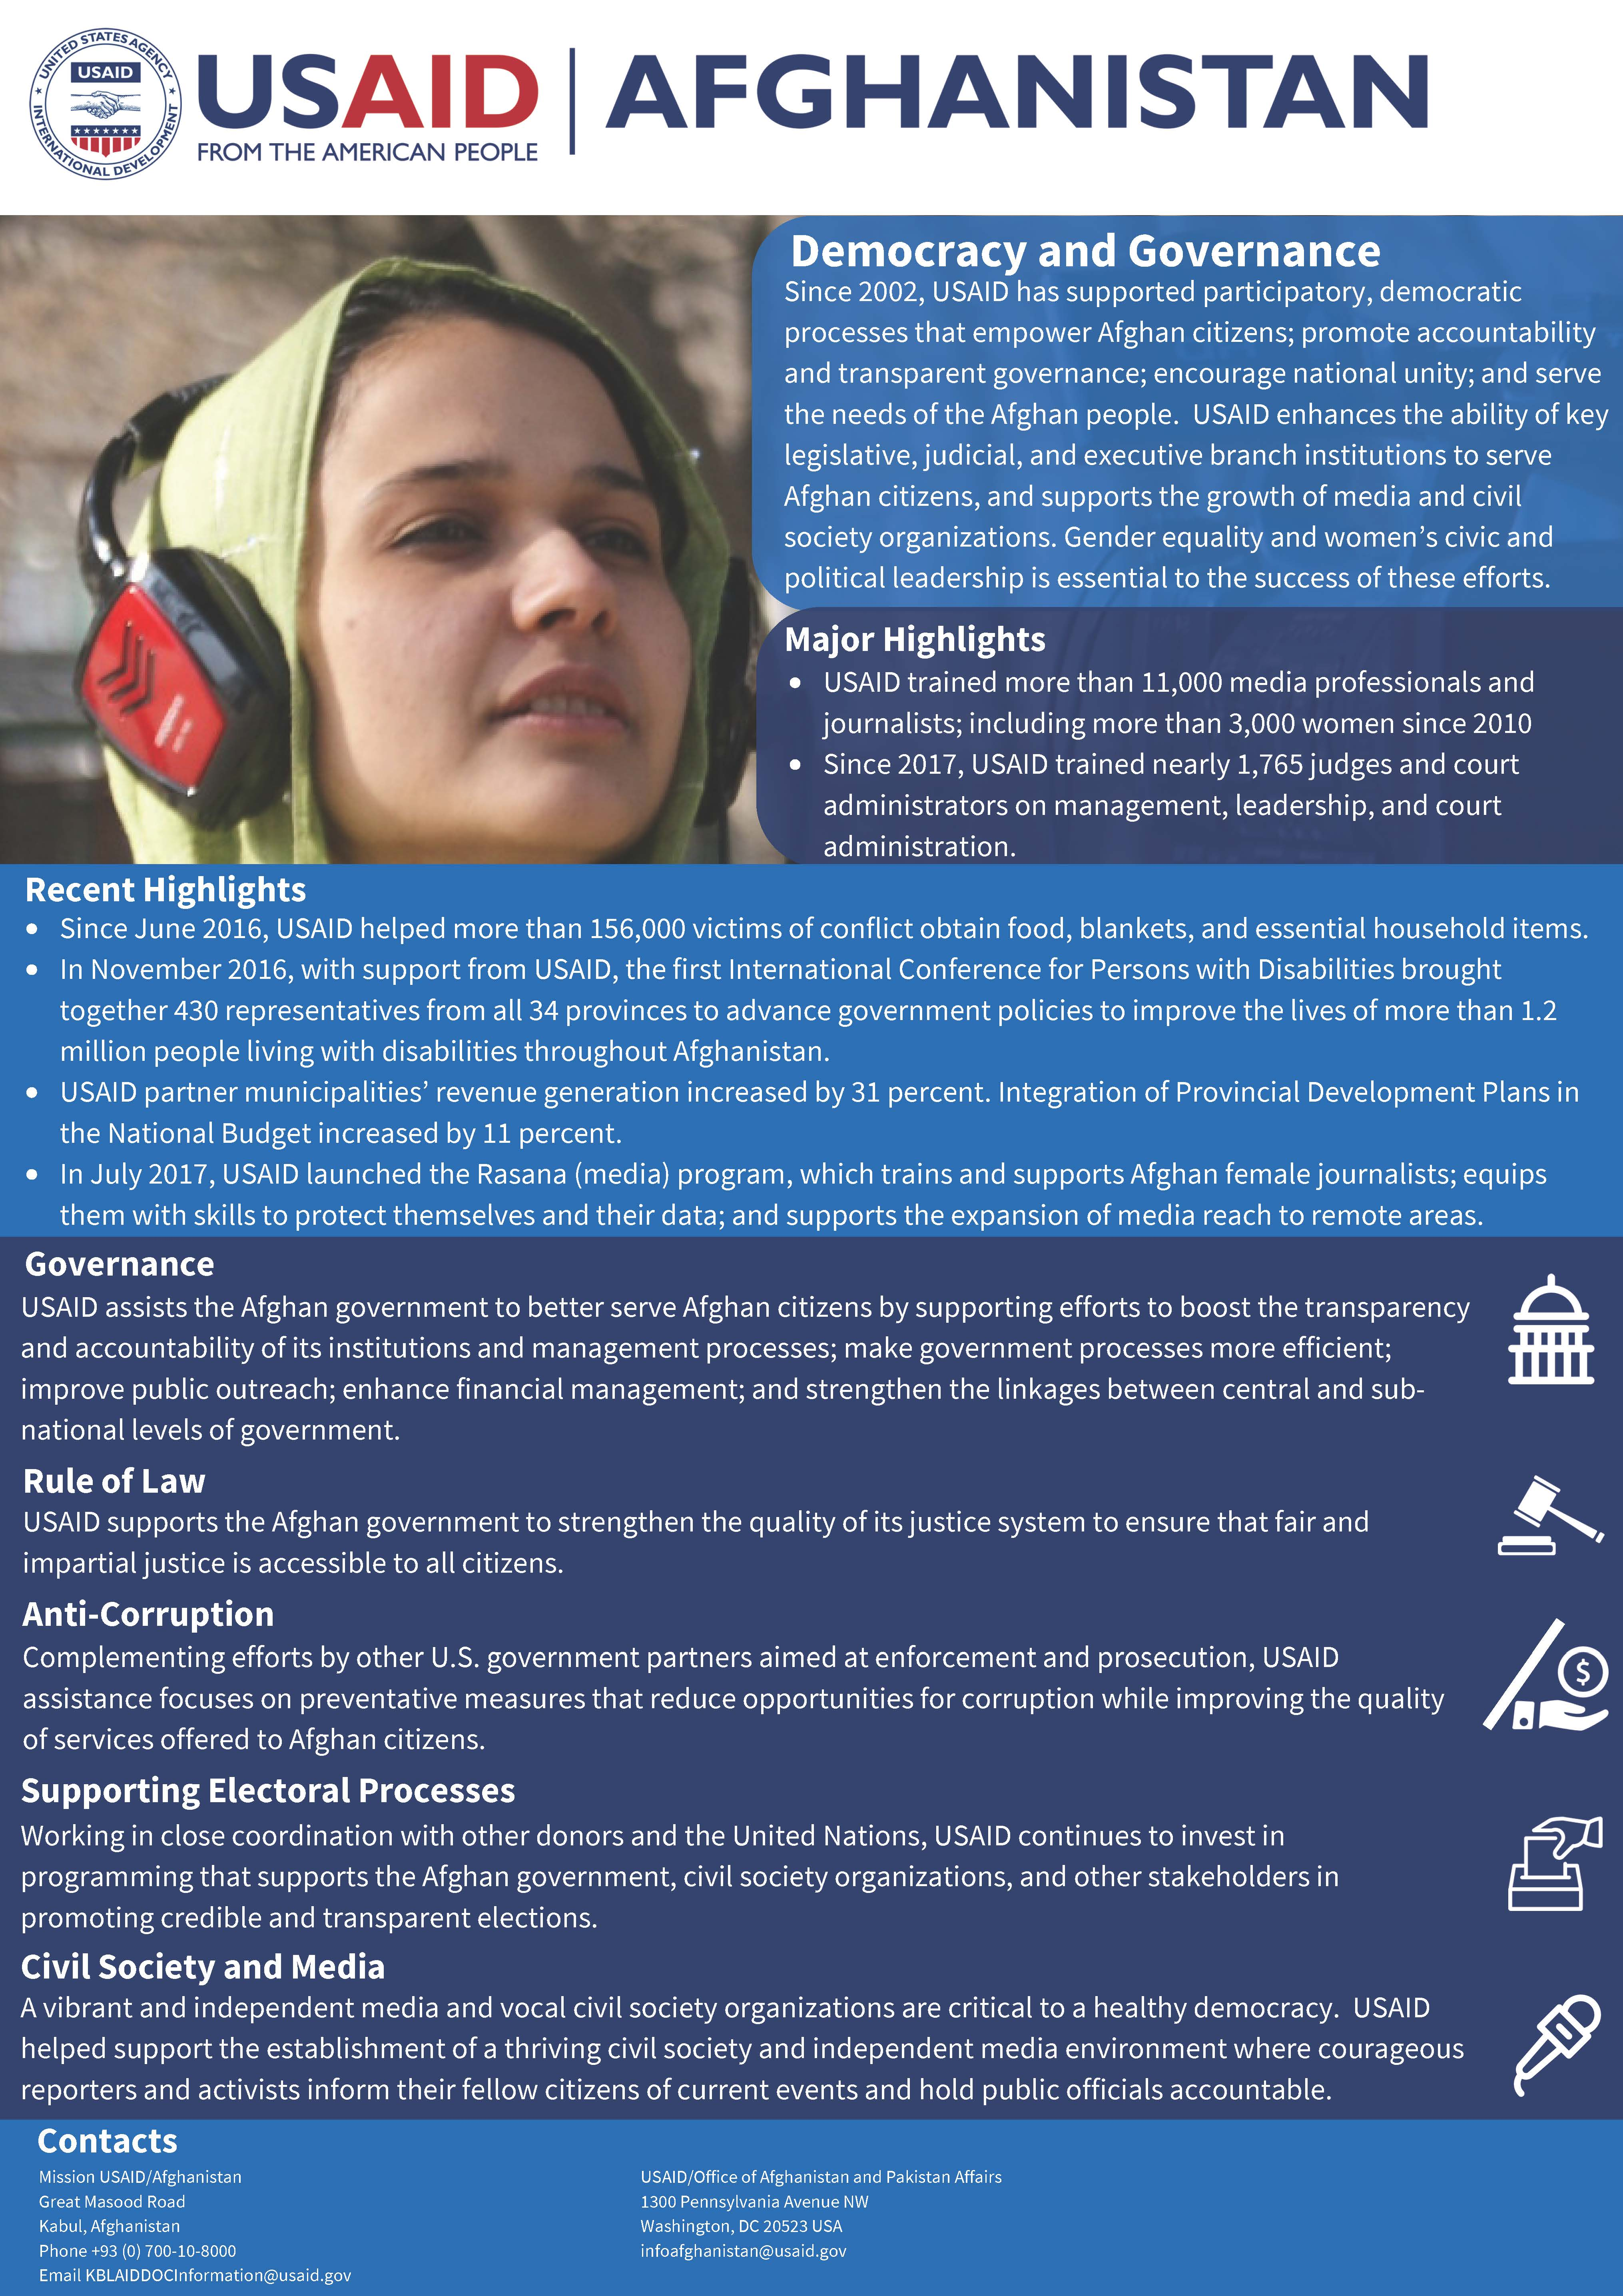 USAID Afghanistan Democracy and Governance Fact Sheet